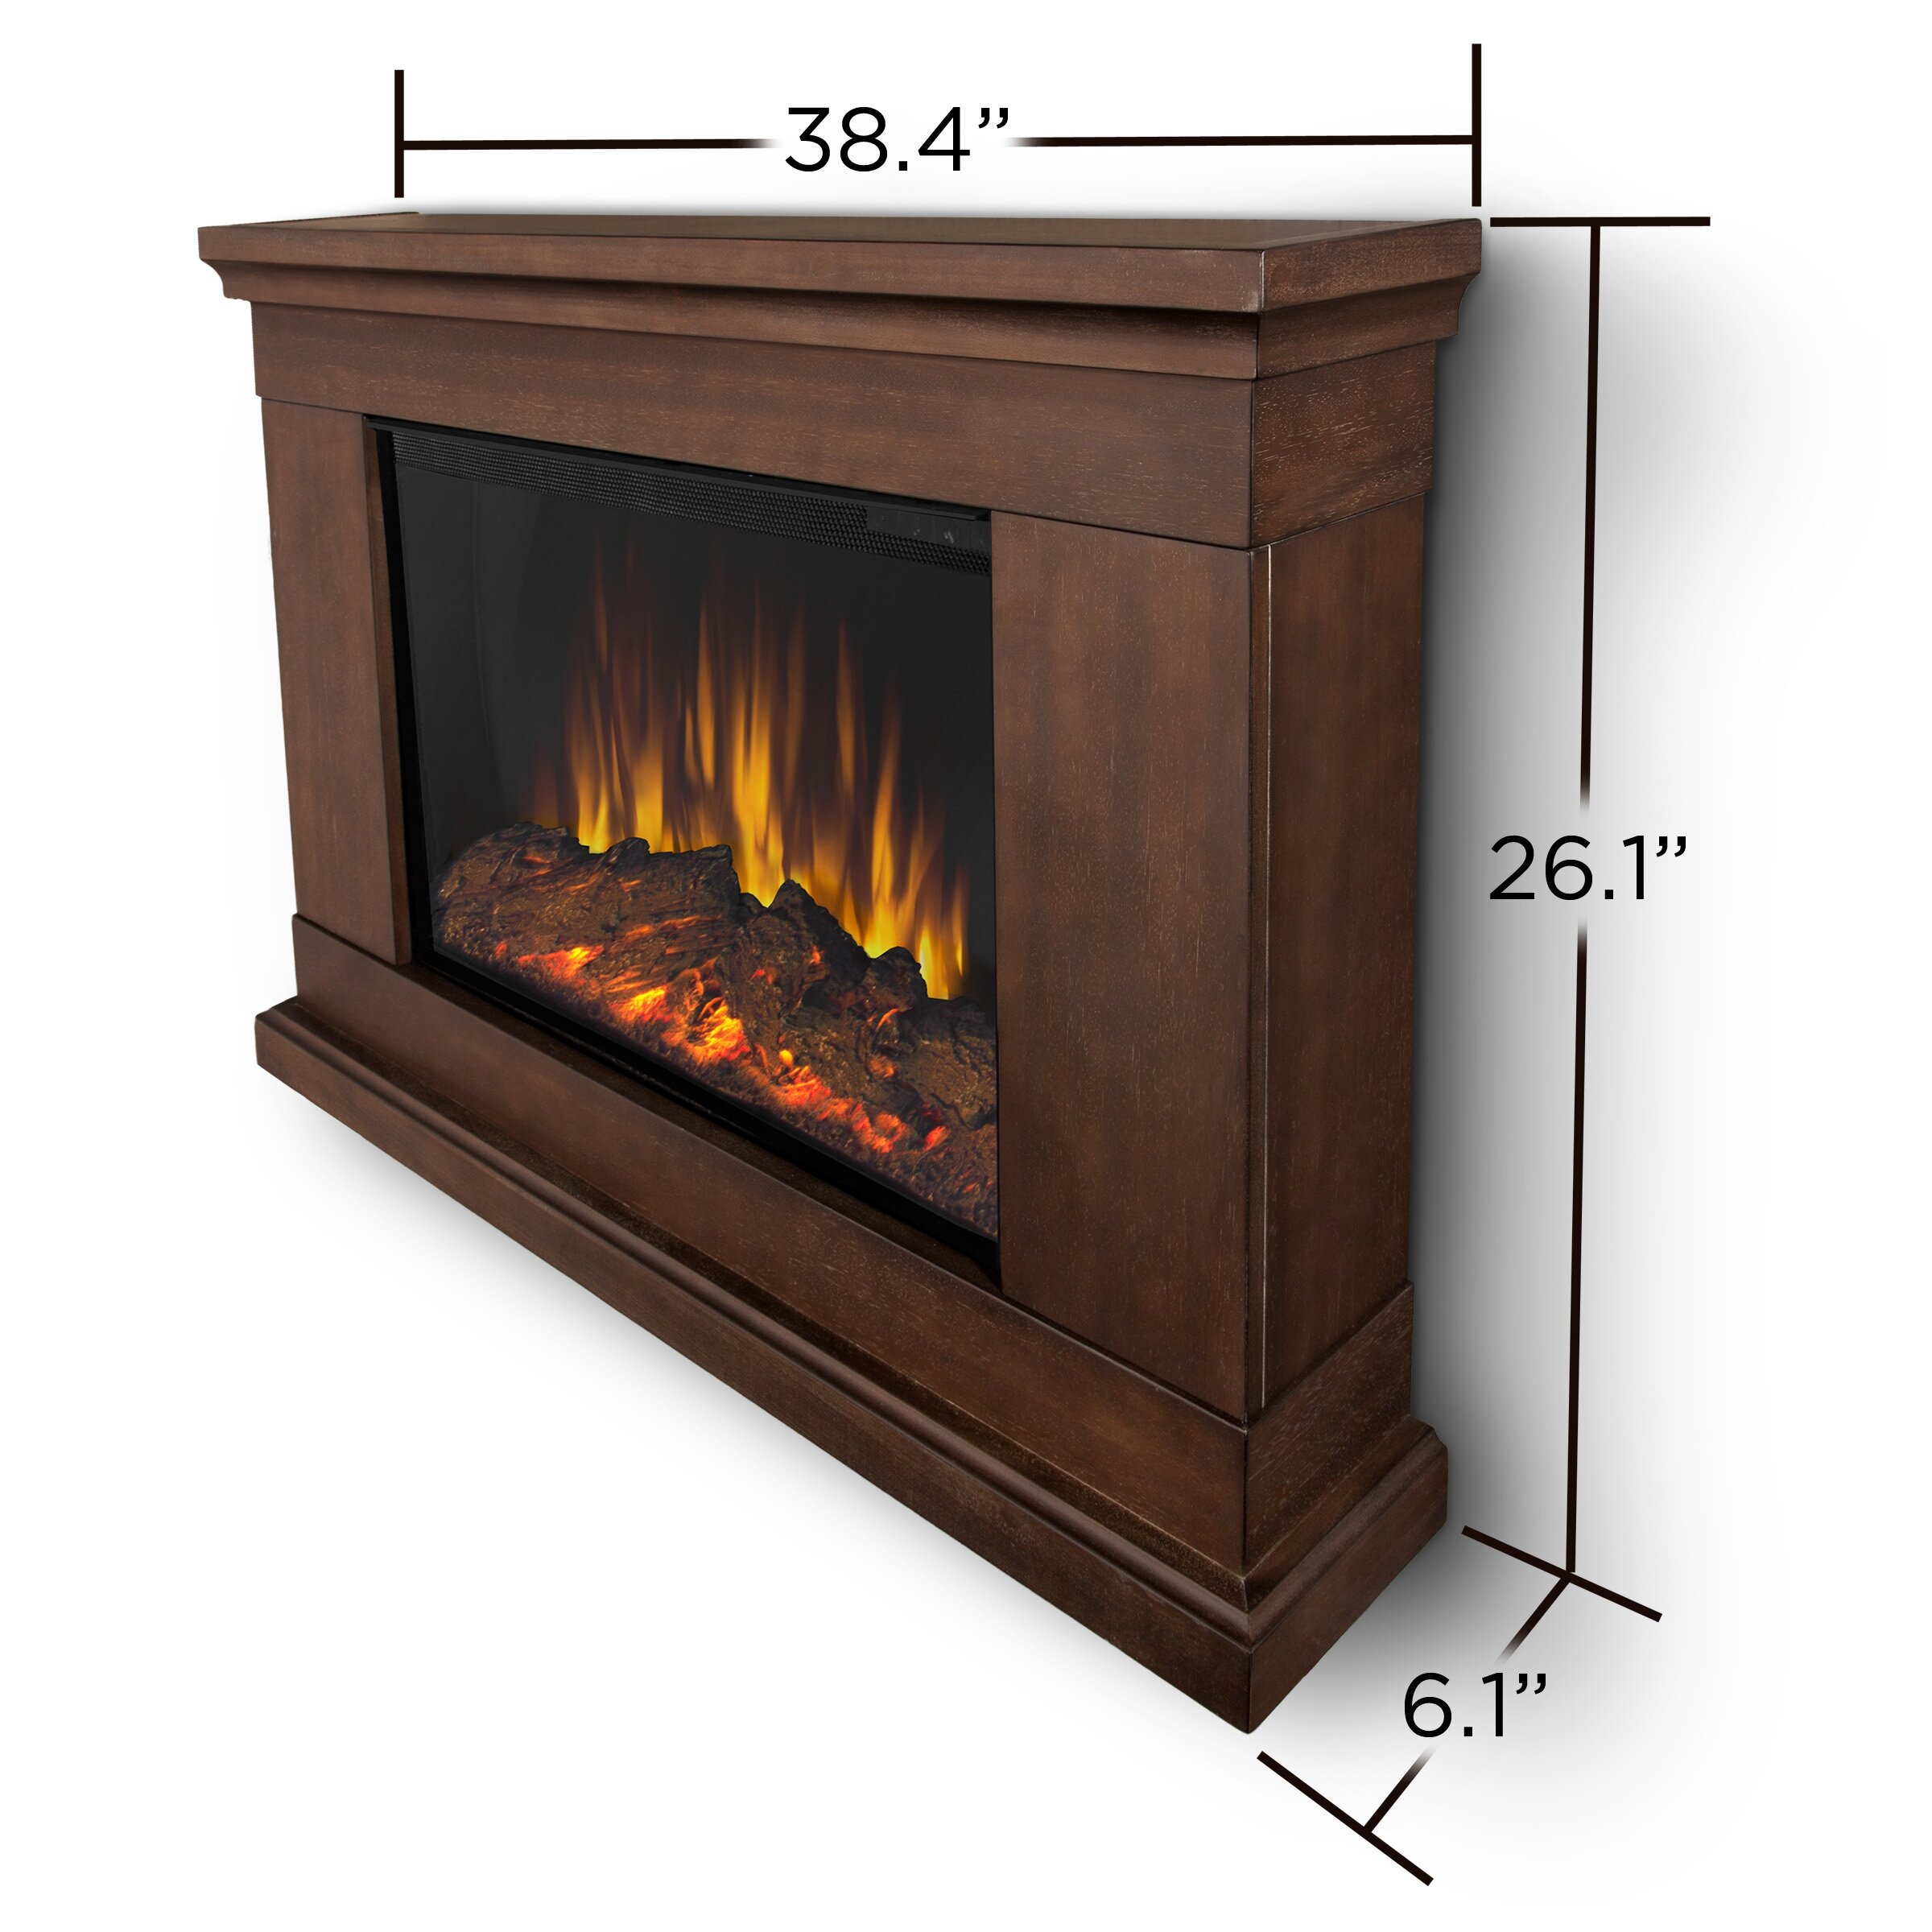 slim fireplace wall mount real flame electric rona logs - Electric Fireplace Logs